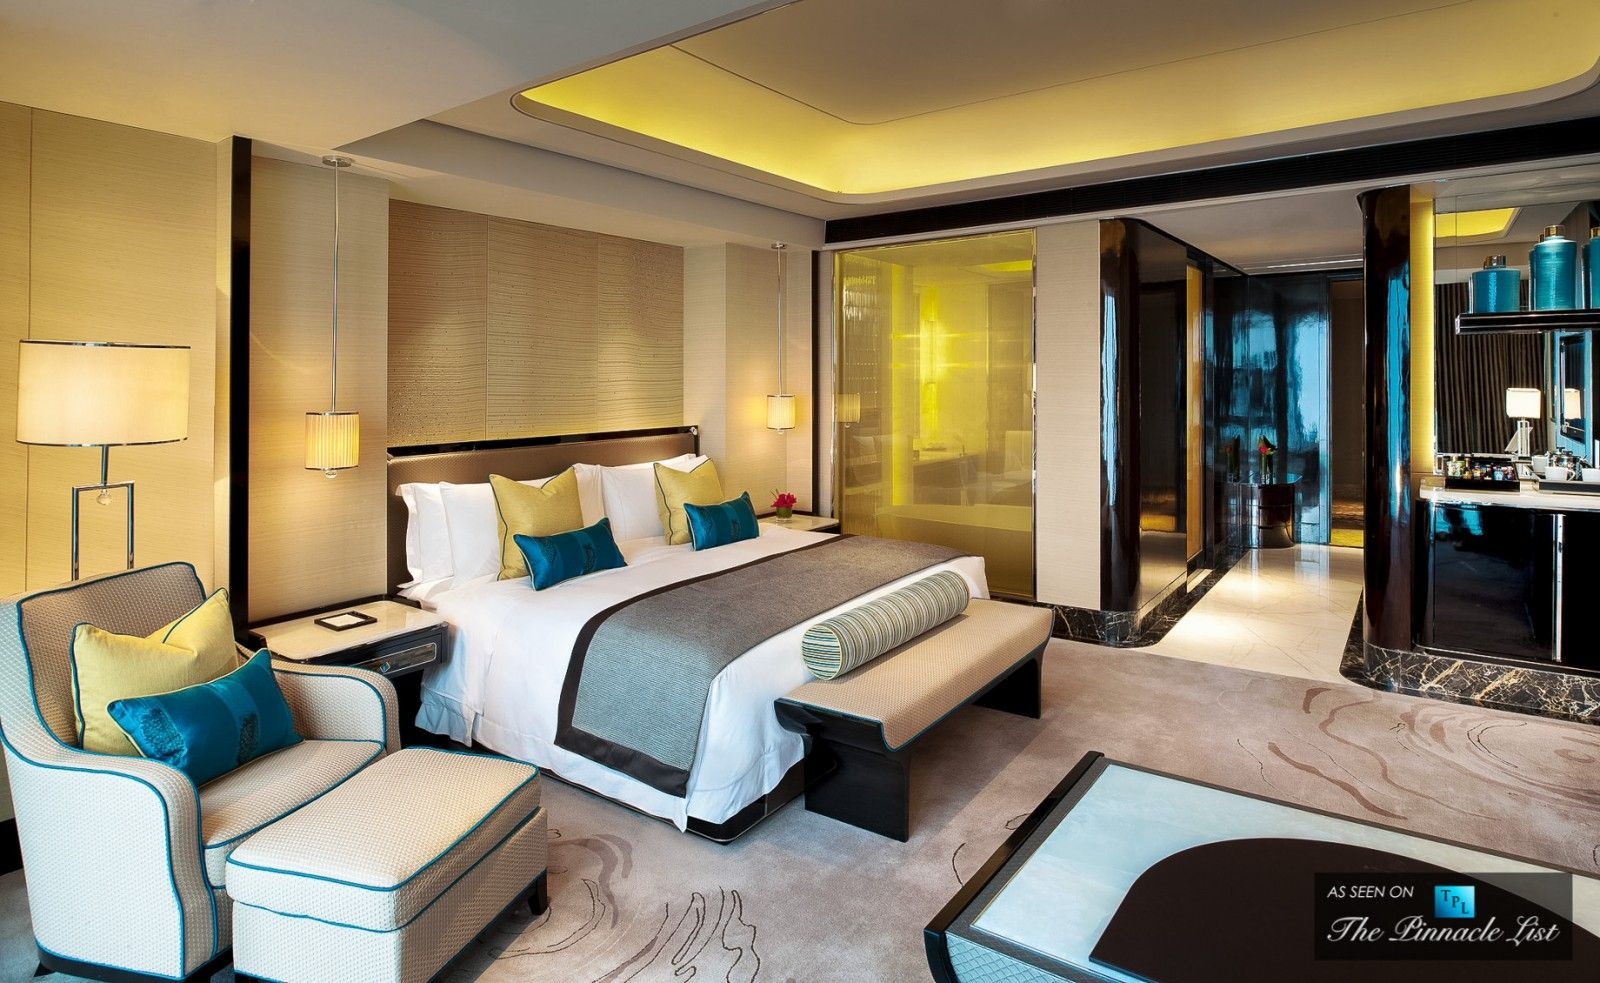 Comfort abounds in this hotel suite st regis luxury for Nice hotel design